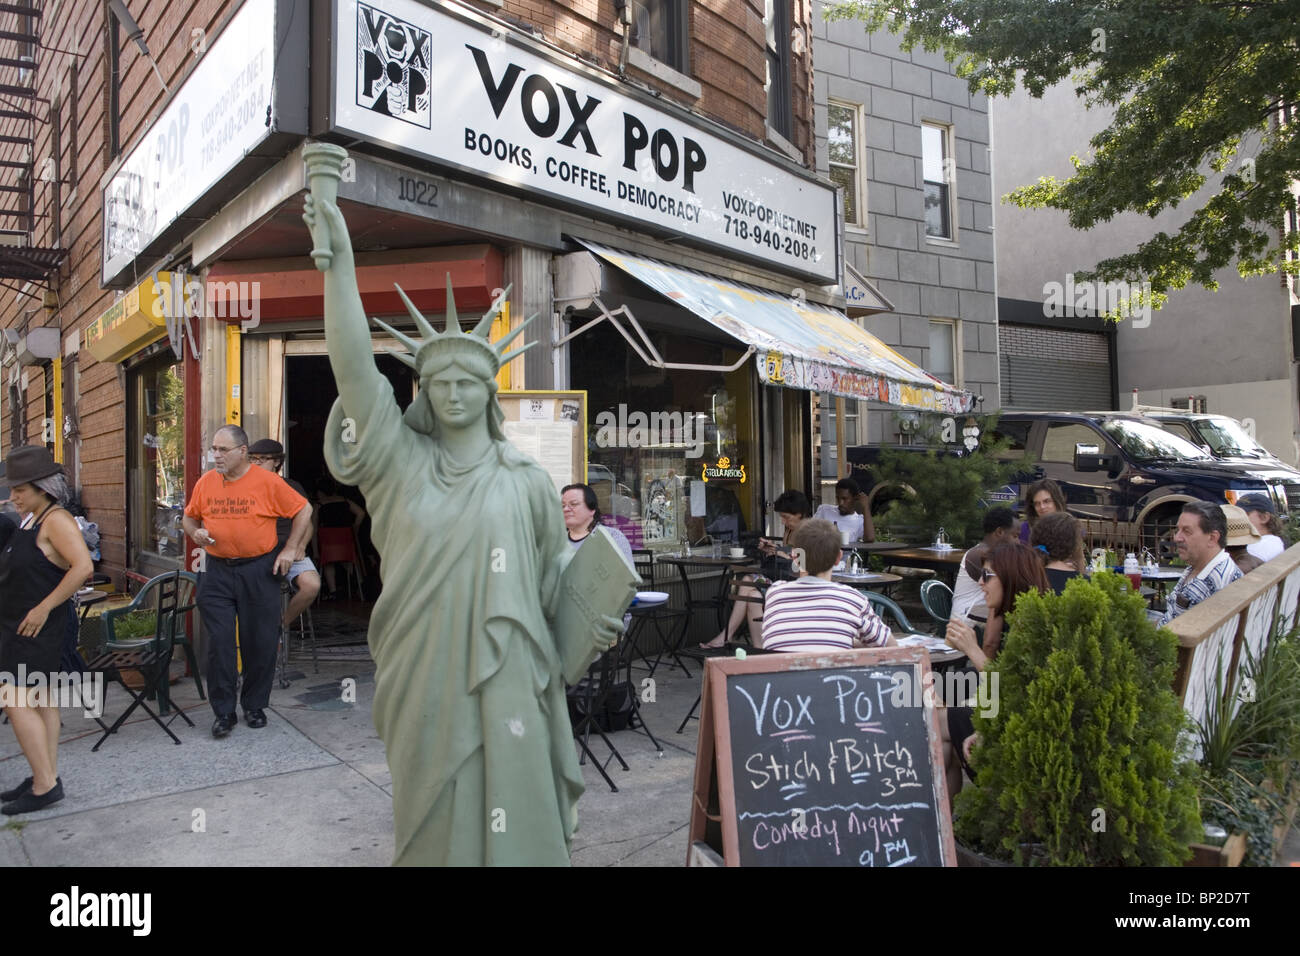 Vox Pop, Books, Coffee, Democracy, a community cafe and performance space in Flatbush, Brooklyn, New York. - Stock Image